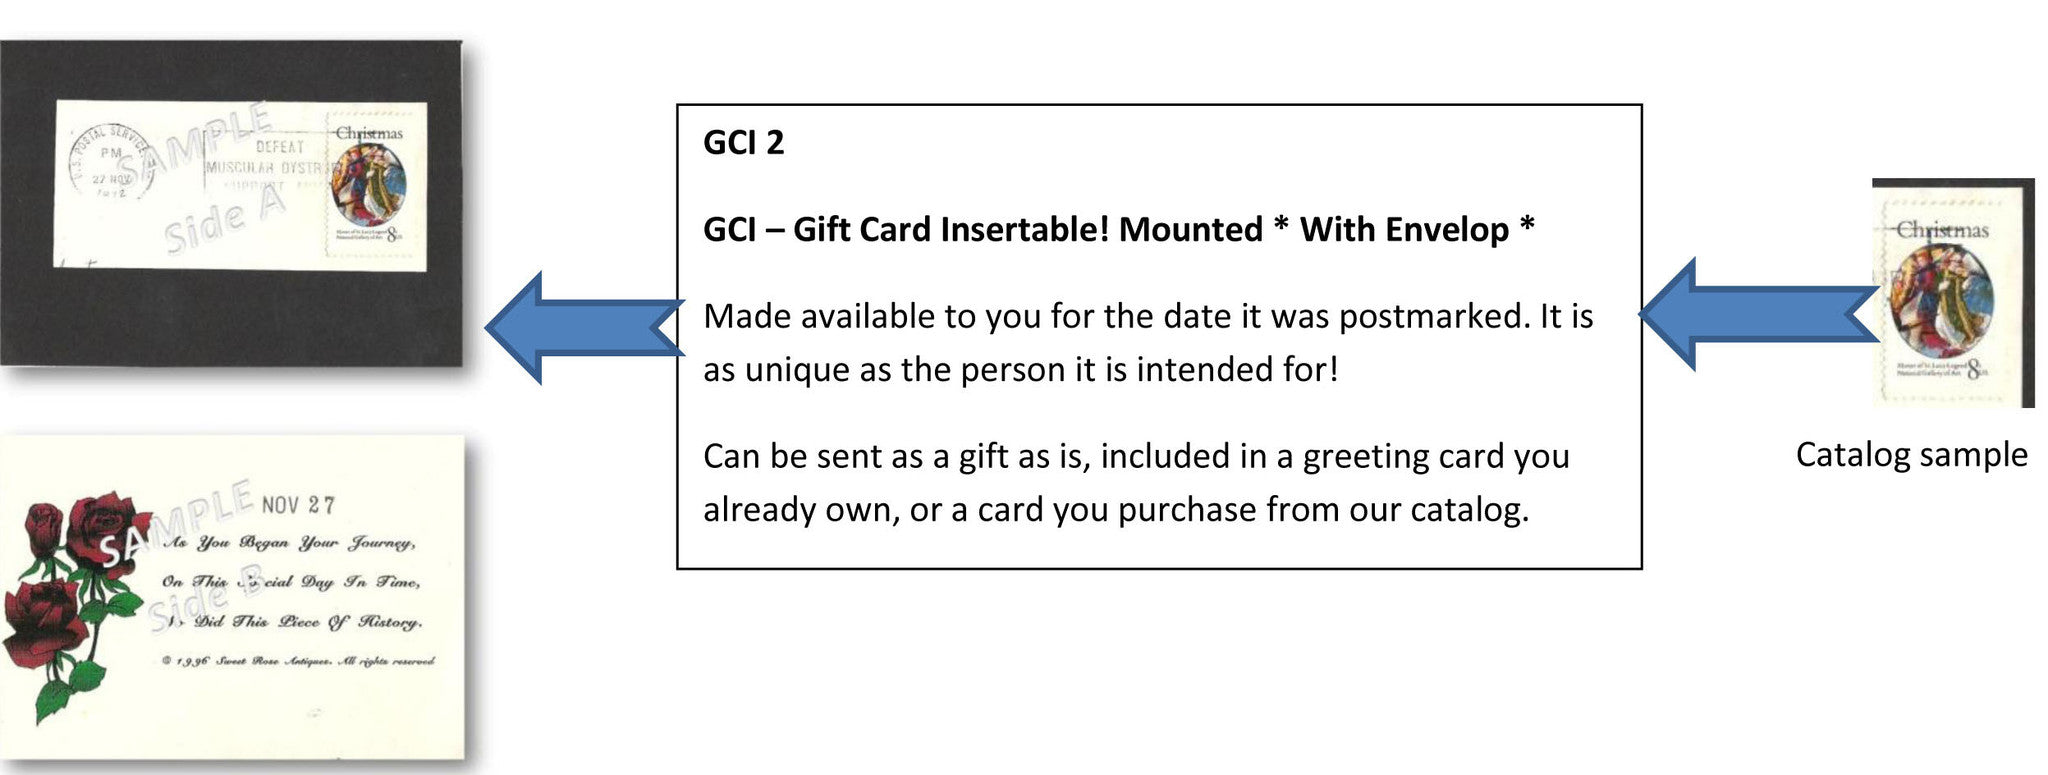 04 08 1932 GCI 2 Gift Card Insert -  Post Marked 2c Washington